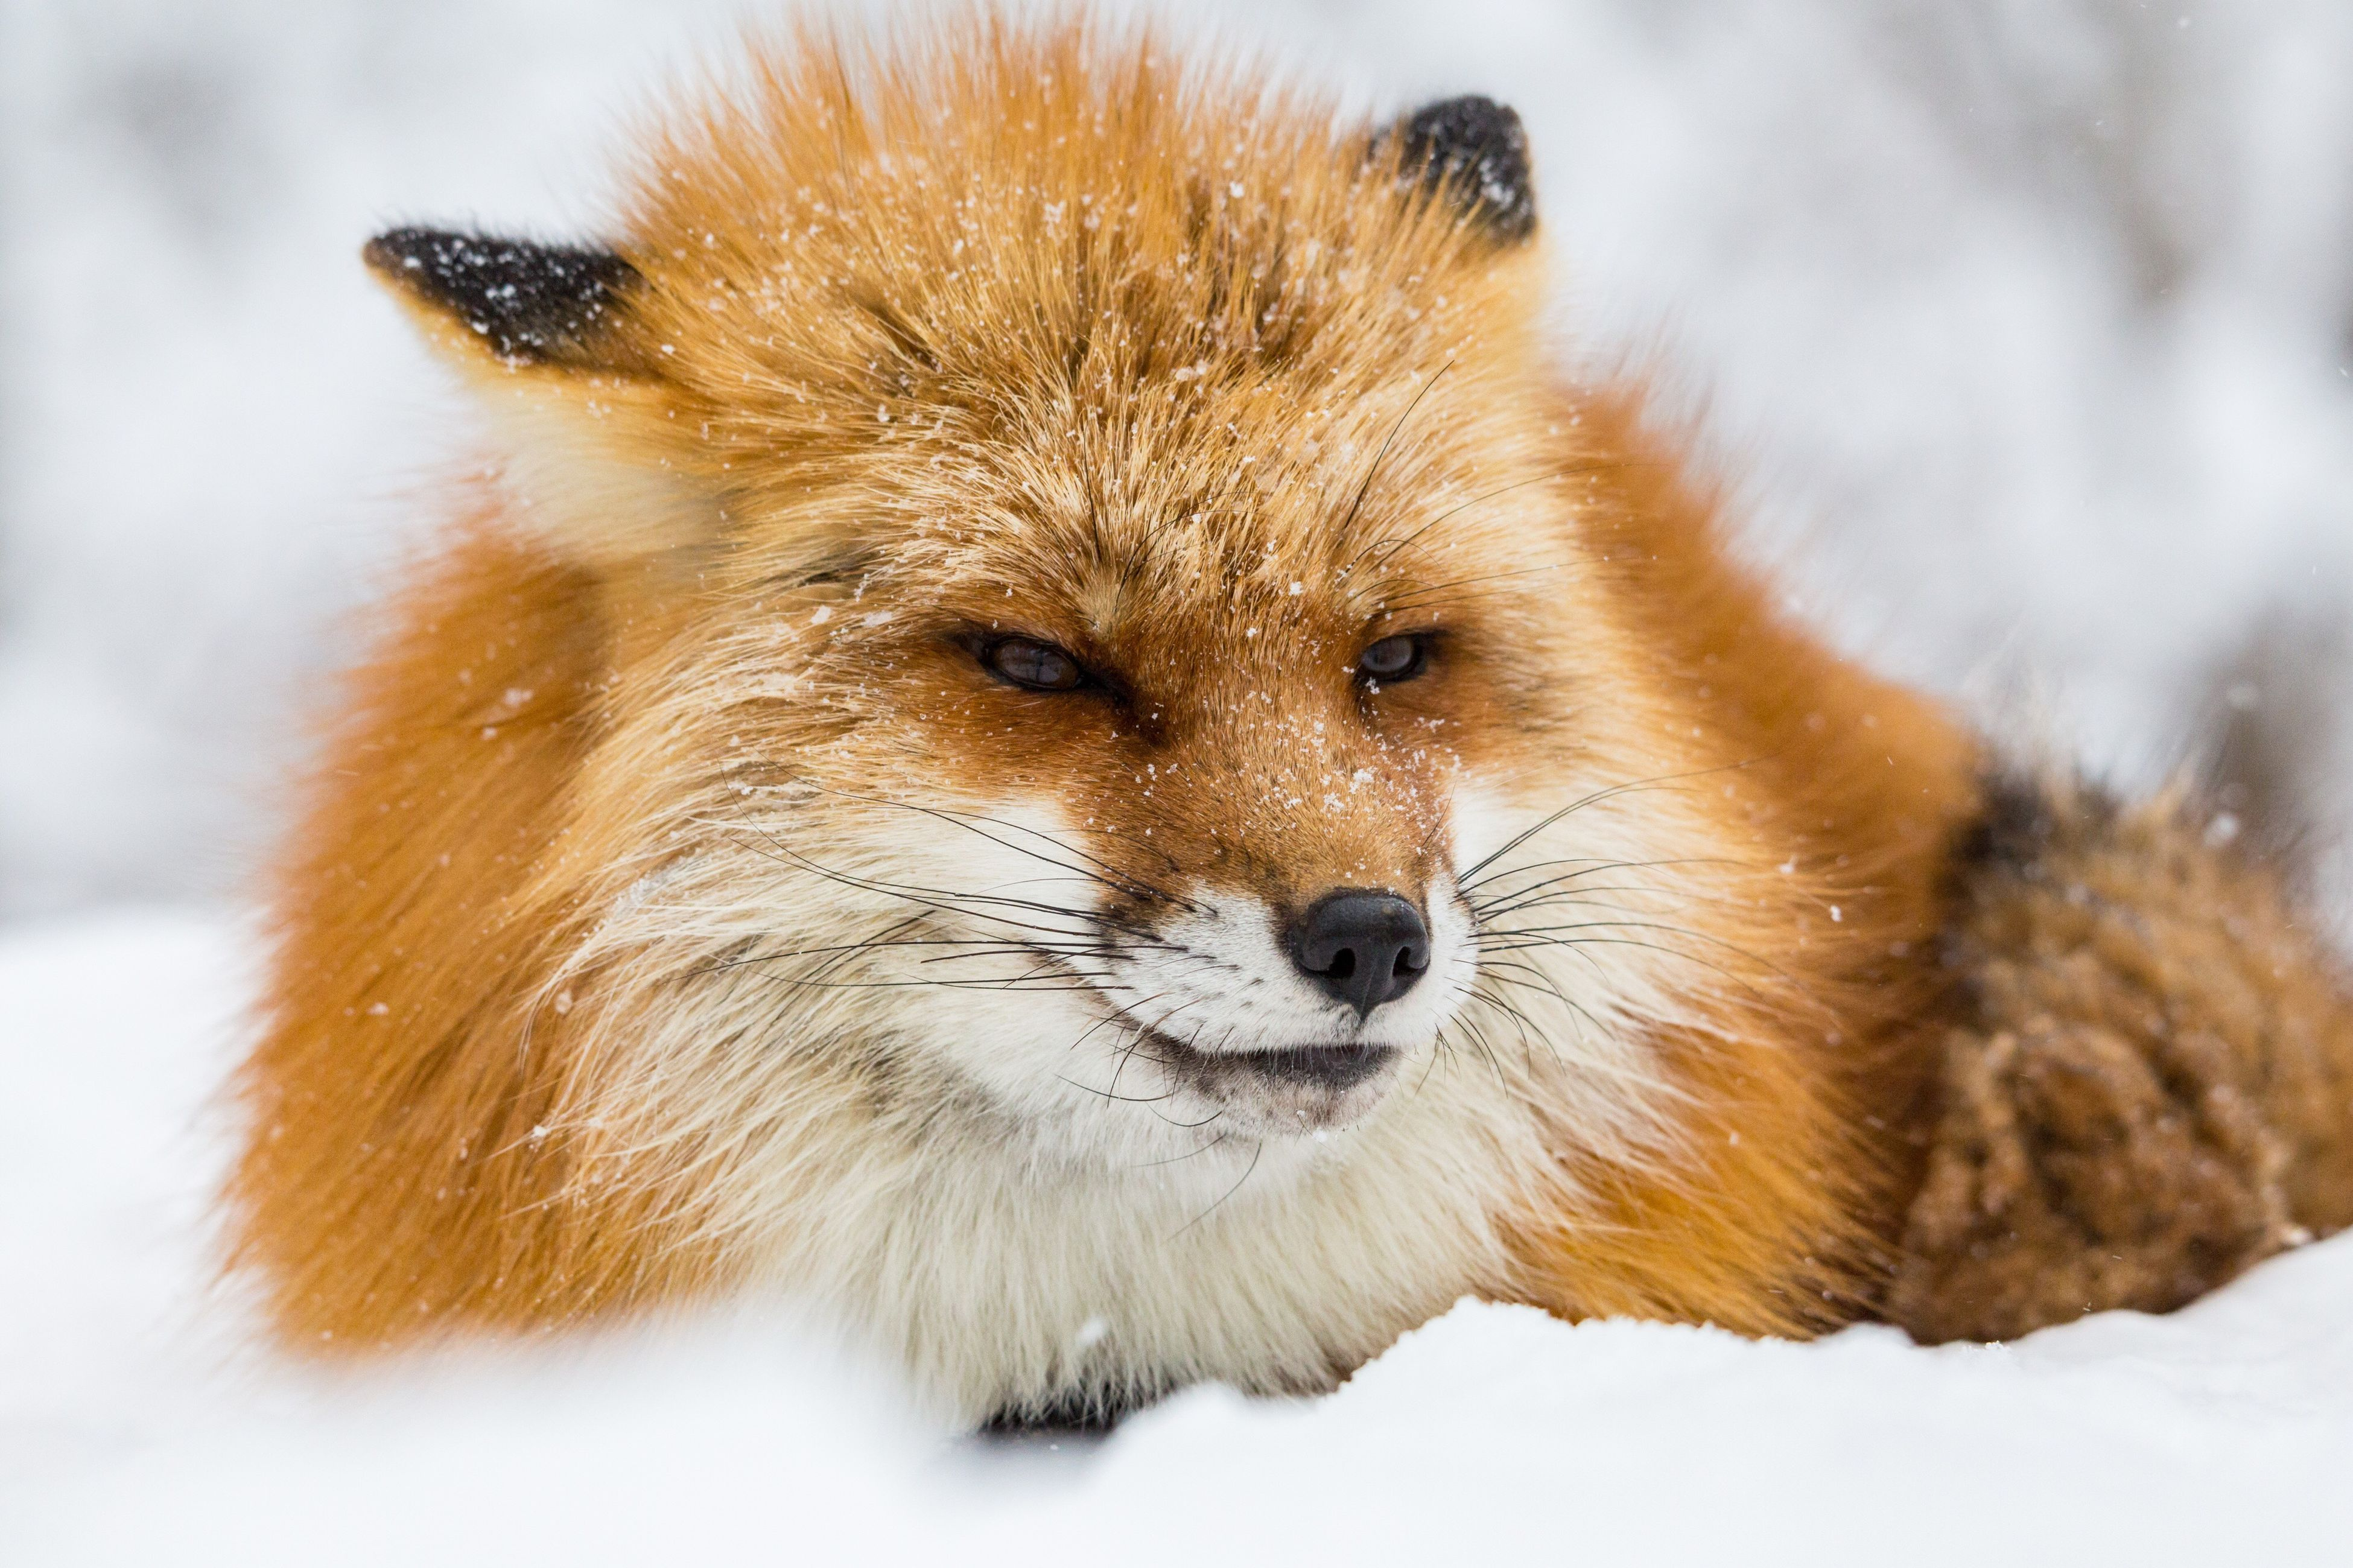 cold temperature, animal wildlife, snow, animal themes, animals in the wild, nature, winter, mammal, one animal, no people, close-up, portrait, outdoors, day, beauty in nature